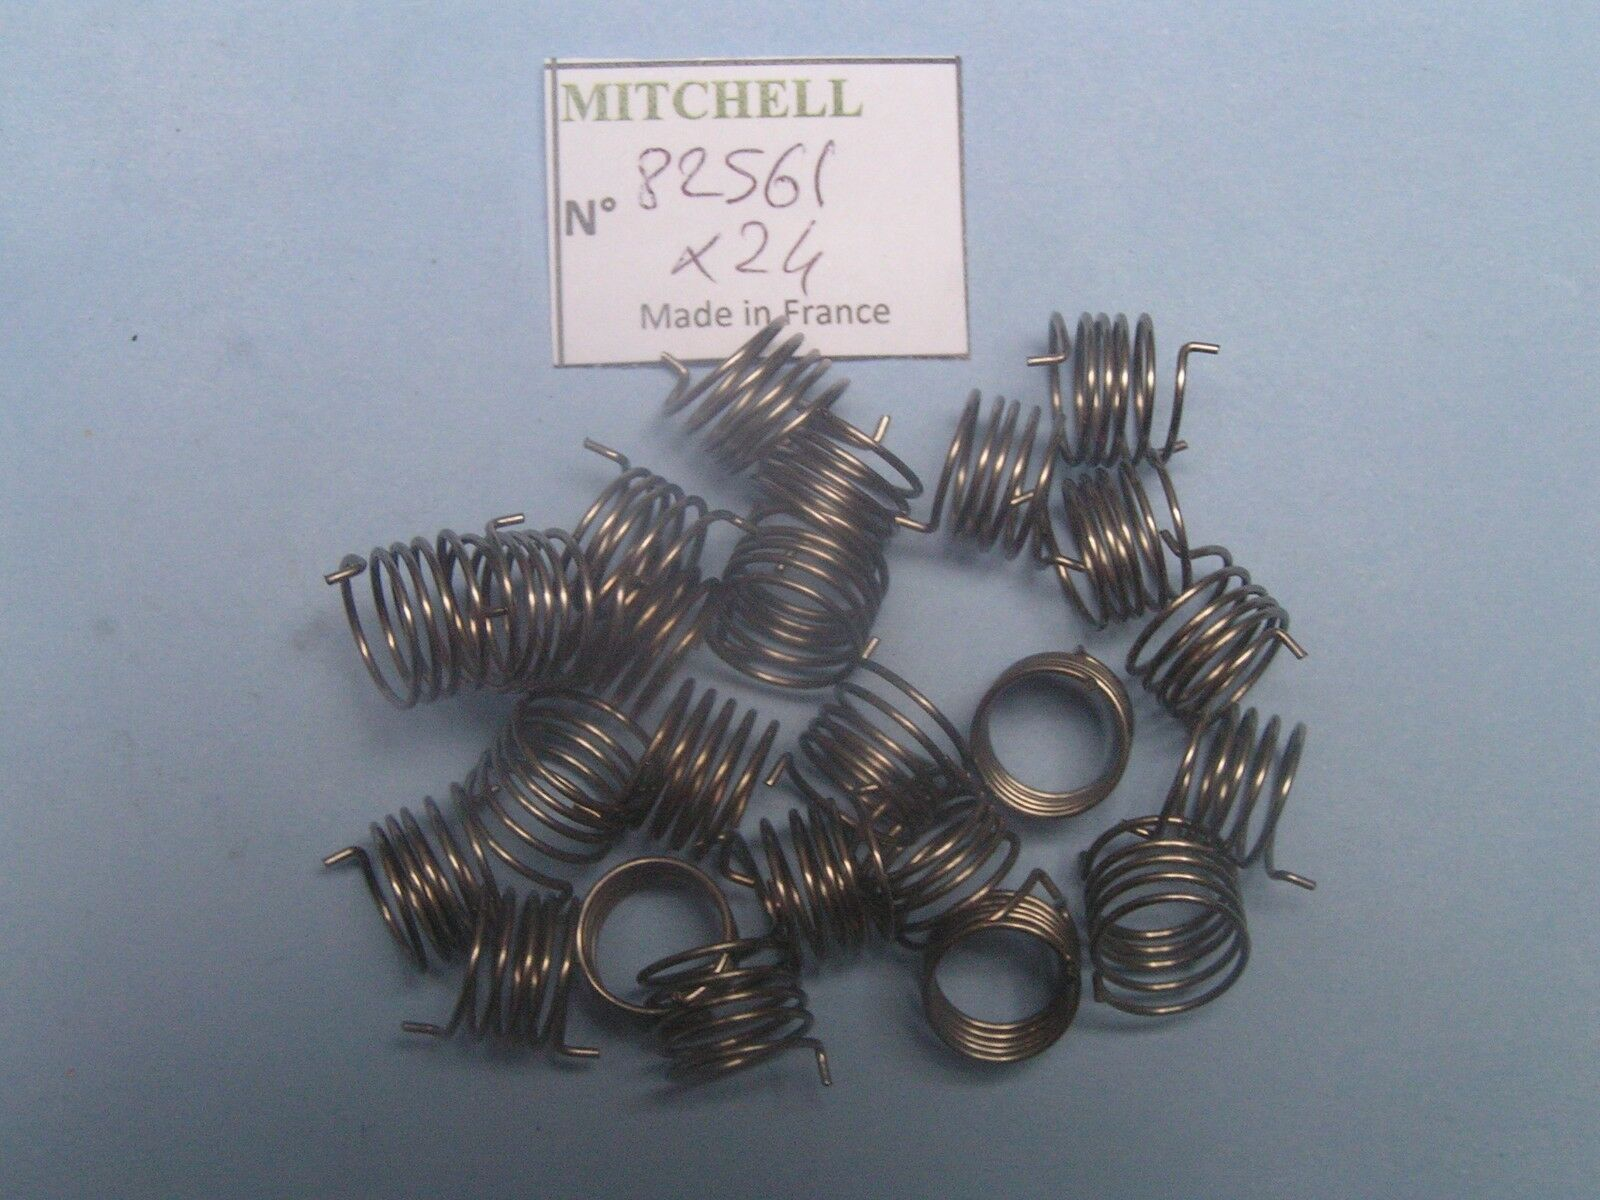 24 BAIL SPRING REEL PART 82561 RESSORT  MOULINET MITCHELL 300S 400S 900 910  hot limited edition